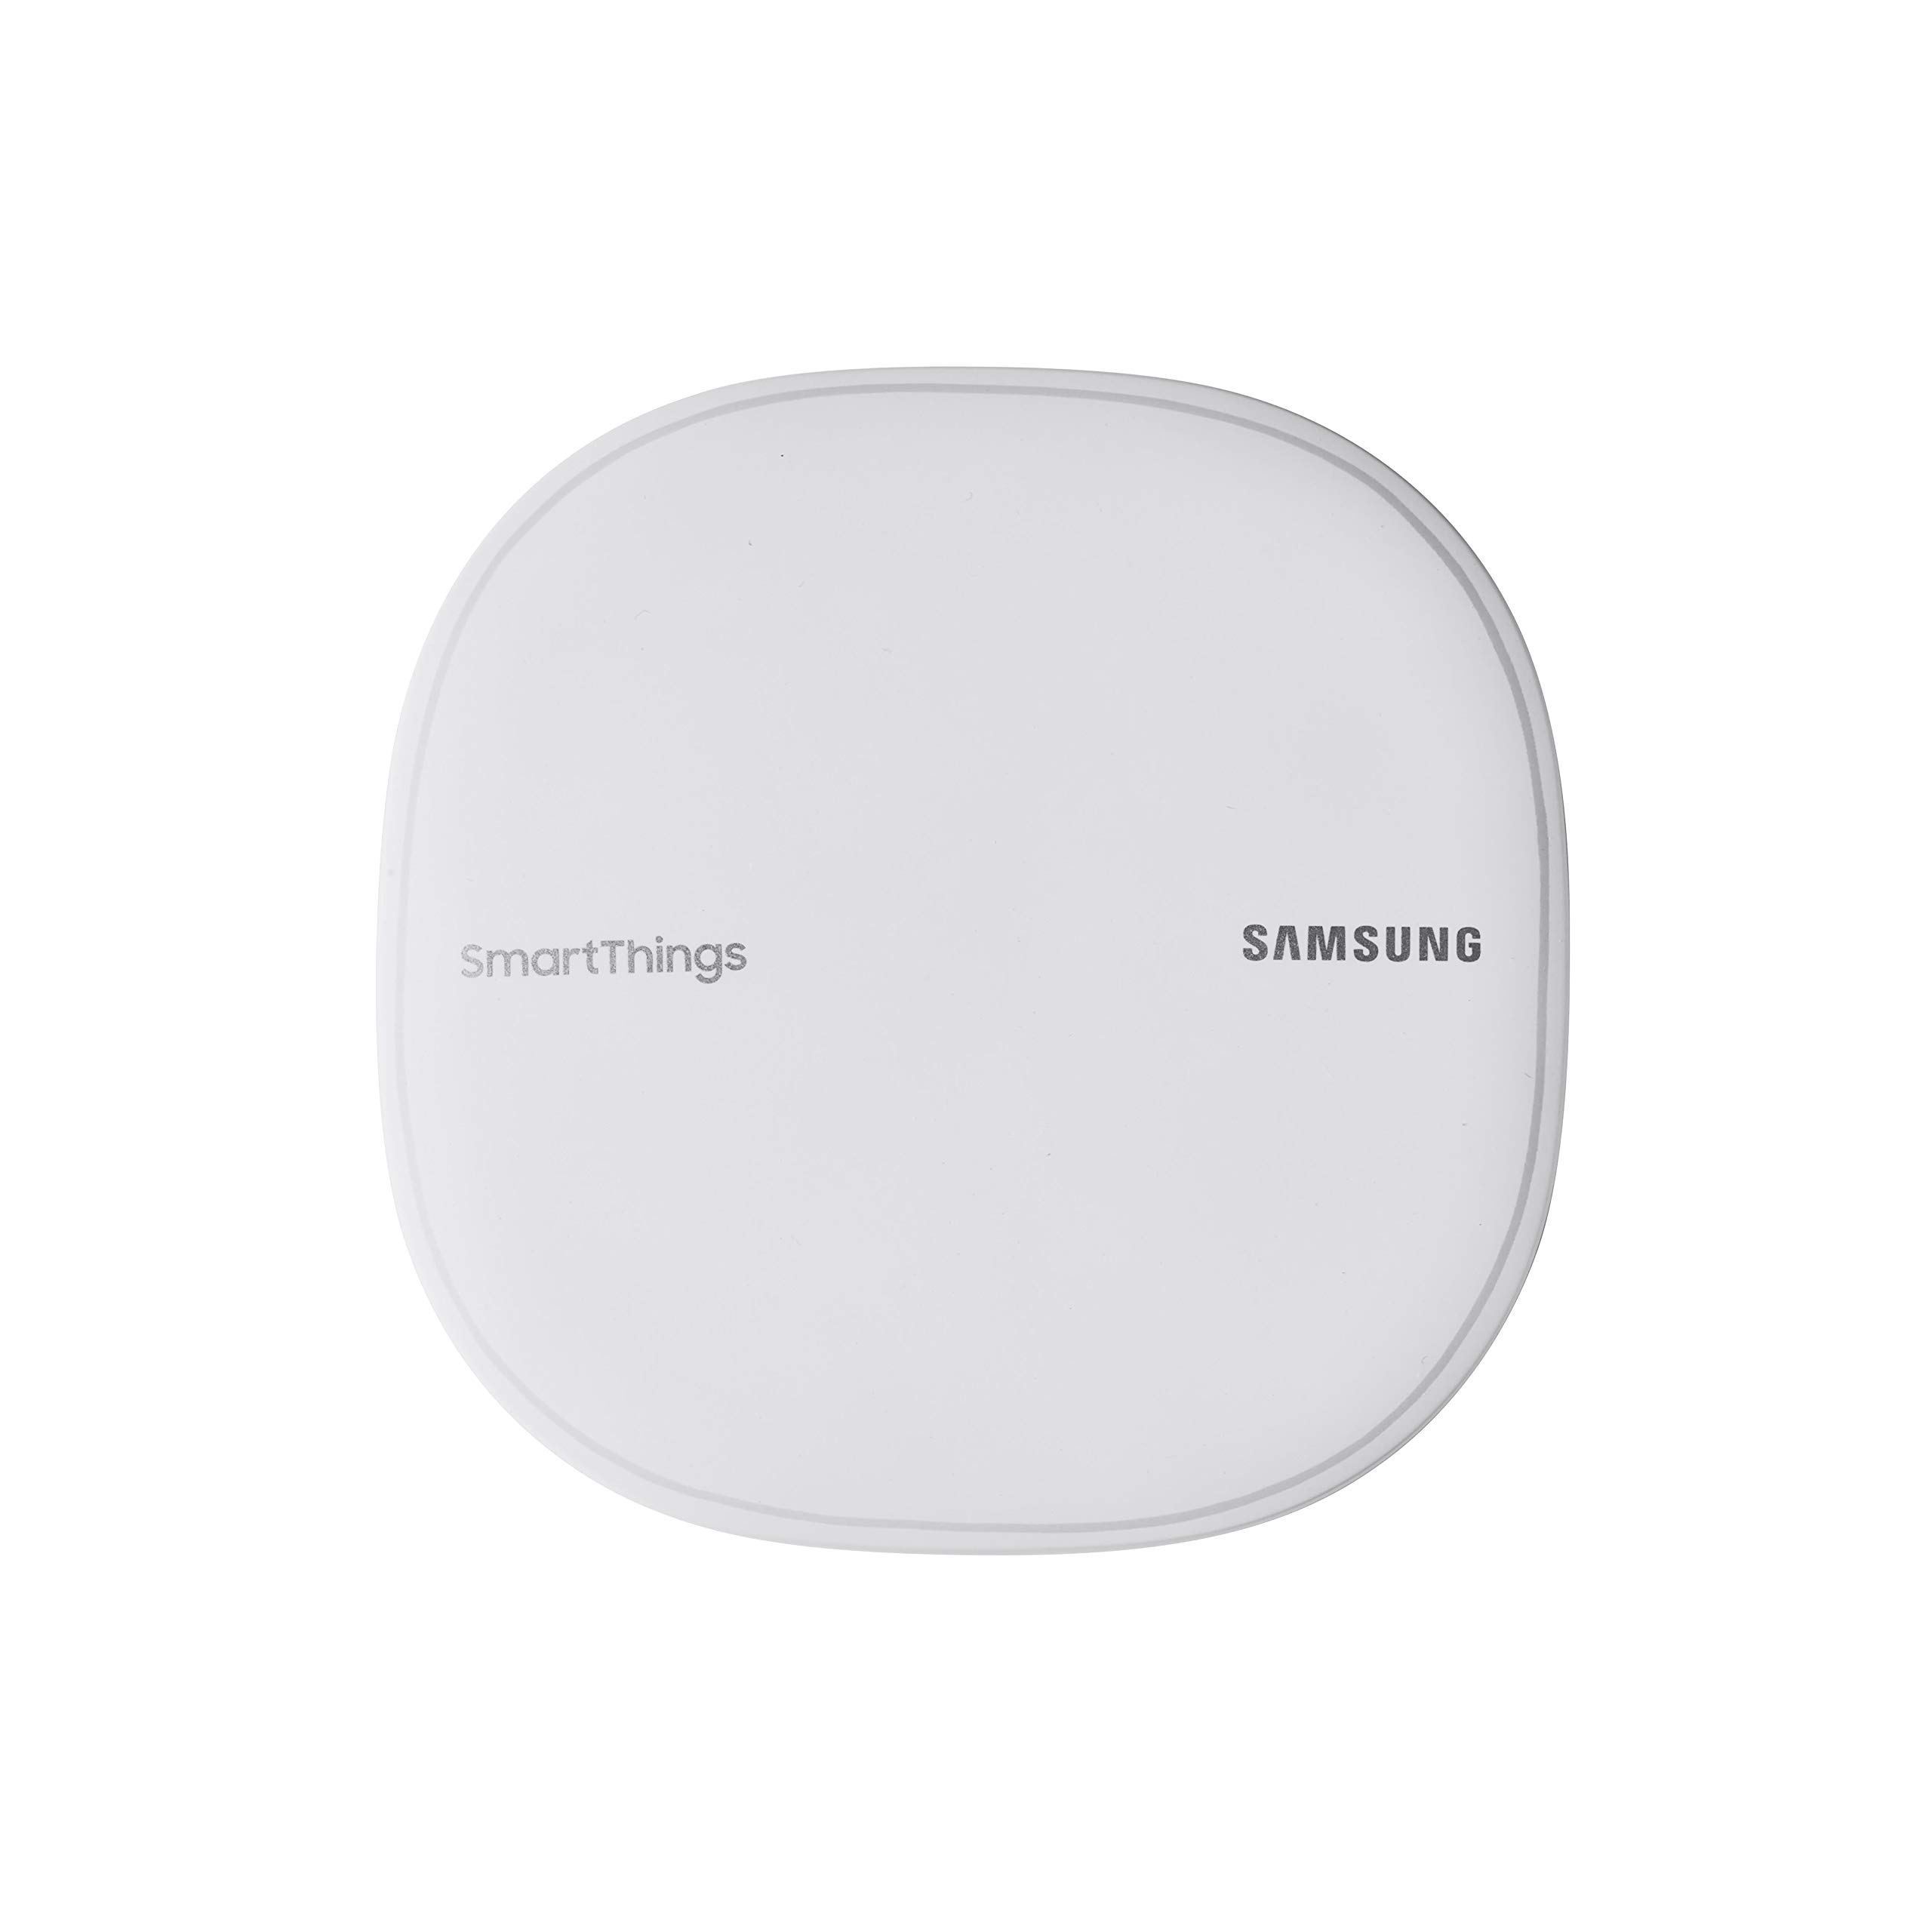 Samsung SmartThings Wifi Mesh Router Range Extender SmartThings Hub Functionality Whole-Home WiFi Coverage - Zigbee, Z-Wave, Cloud to Cloud Protocols - White (Single) by Samsung